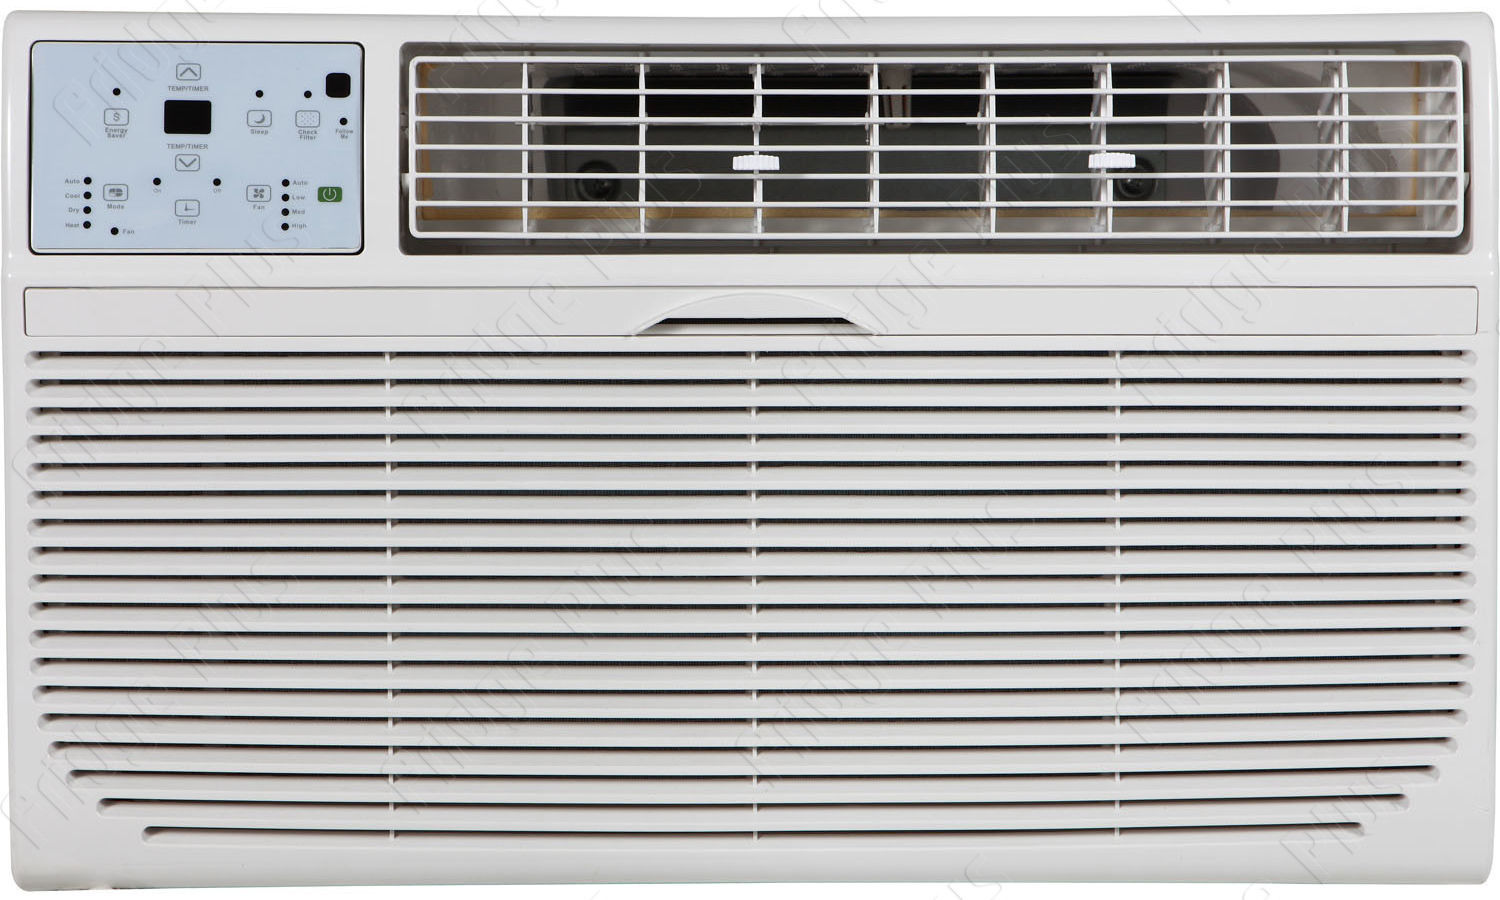 #5A4F45 8000 BTU Thru The Wall Air Conditioner & And 10 Similar Items Best 7113 Wall Unit Heater Ac photos with 1500x900 px on helpvideos.info - Air Conditioners, Air Coolers and more